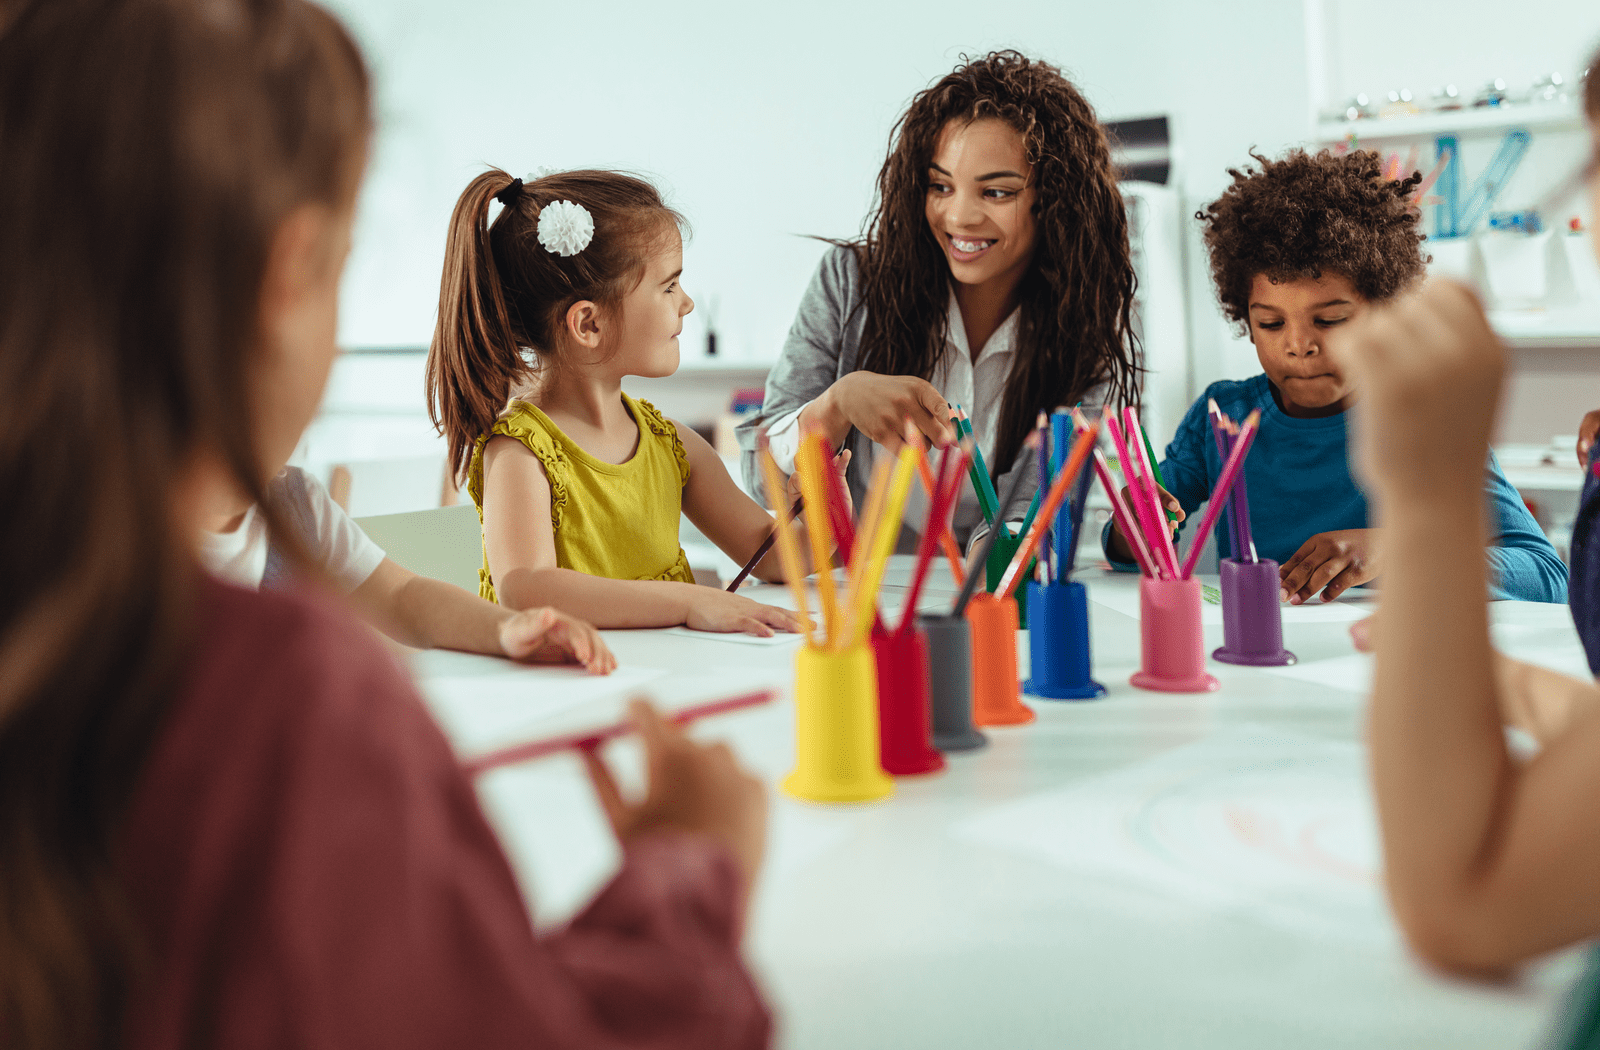 Teacher at a daycare painting with a group of happy children